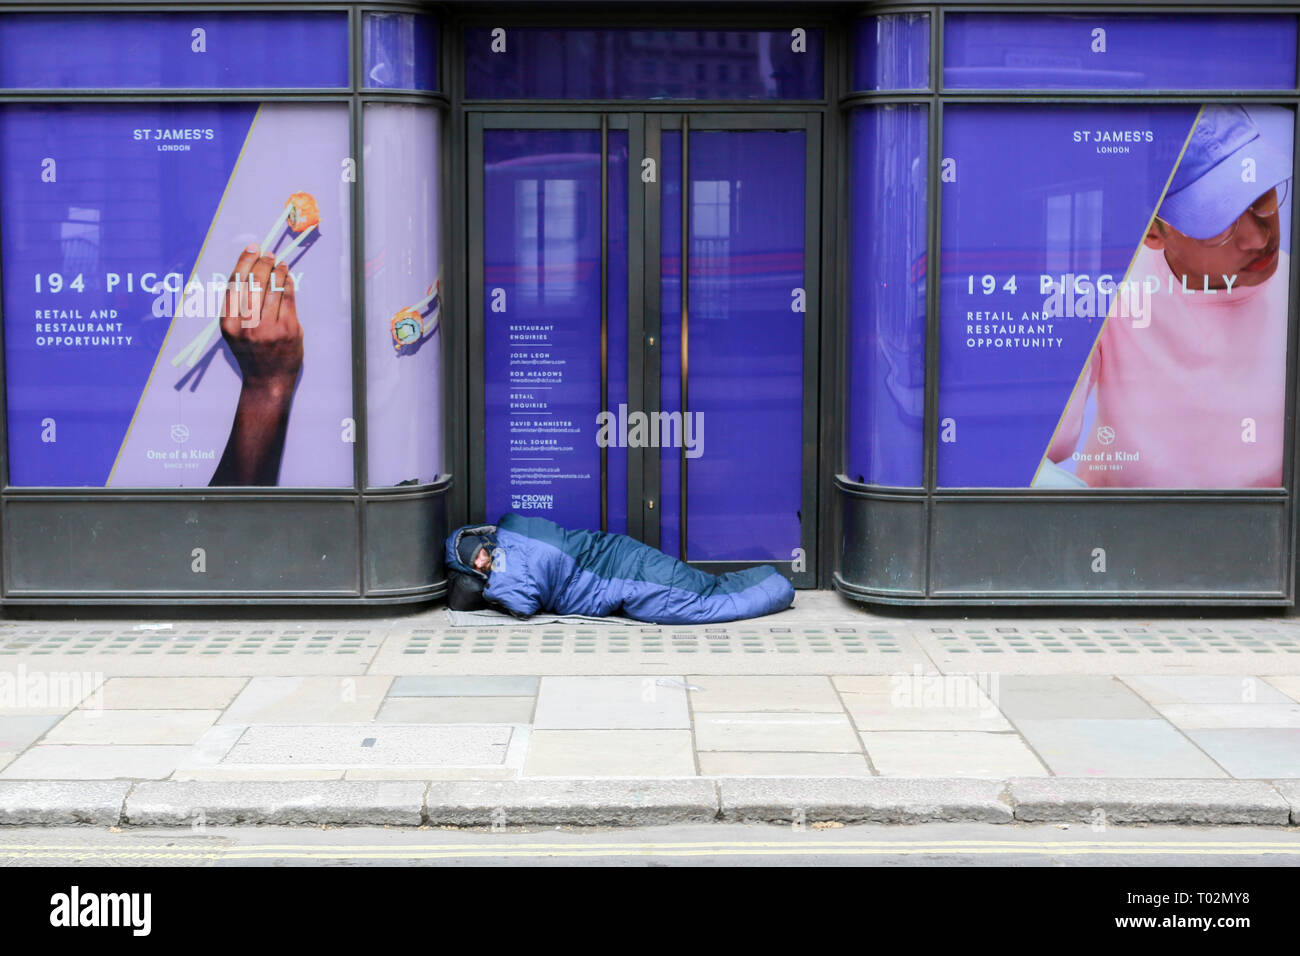 London, UK. 16th March, 2019. A man walks past a homeless man asleep on Piccadilly. Penelope Barritt/Alamy Live news - Stock Image